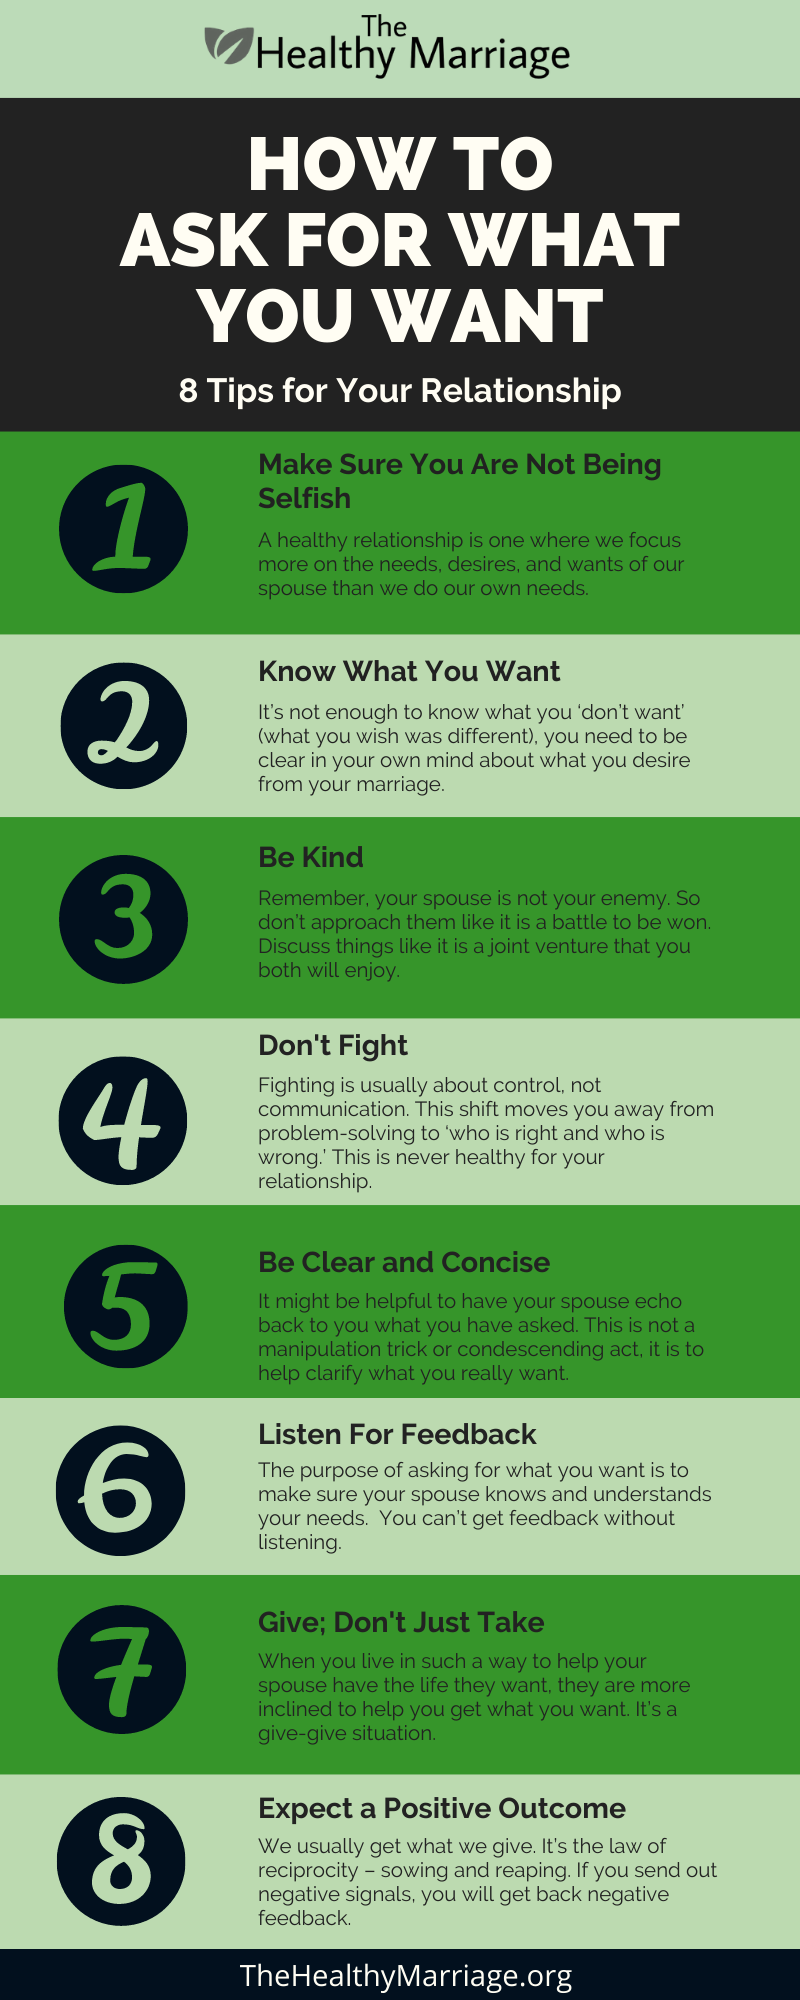 Infographic on 8 tips on how to ask for what you want in a relaitonship